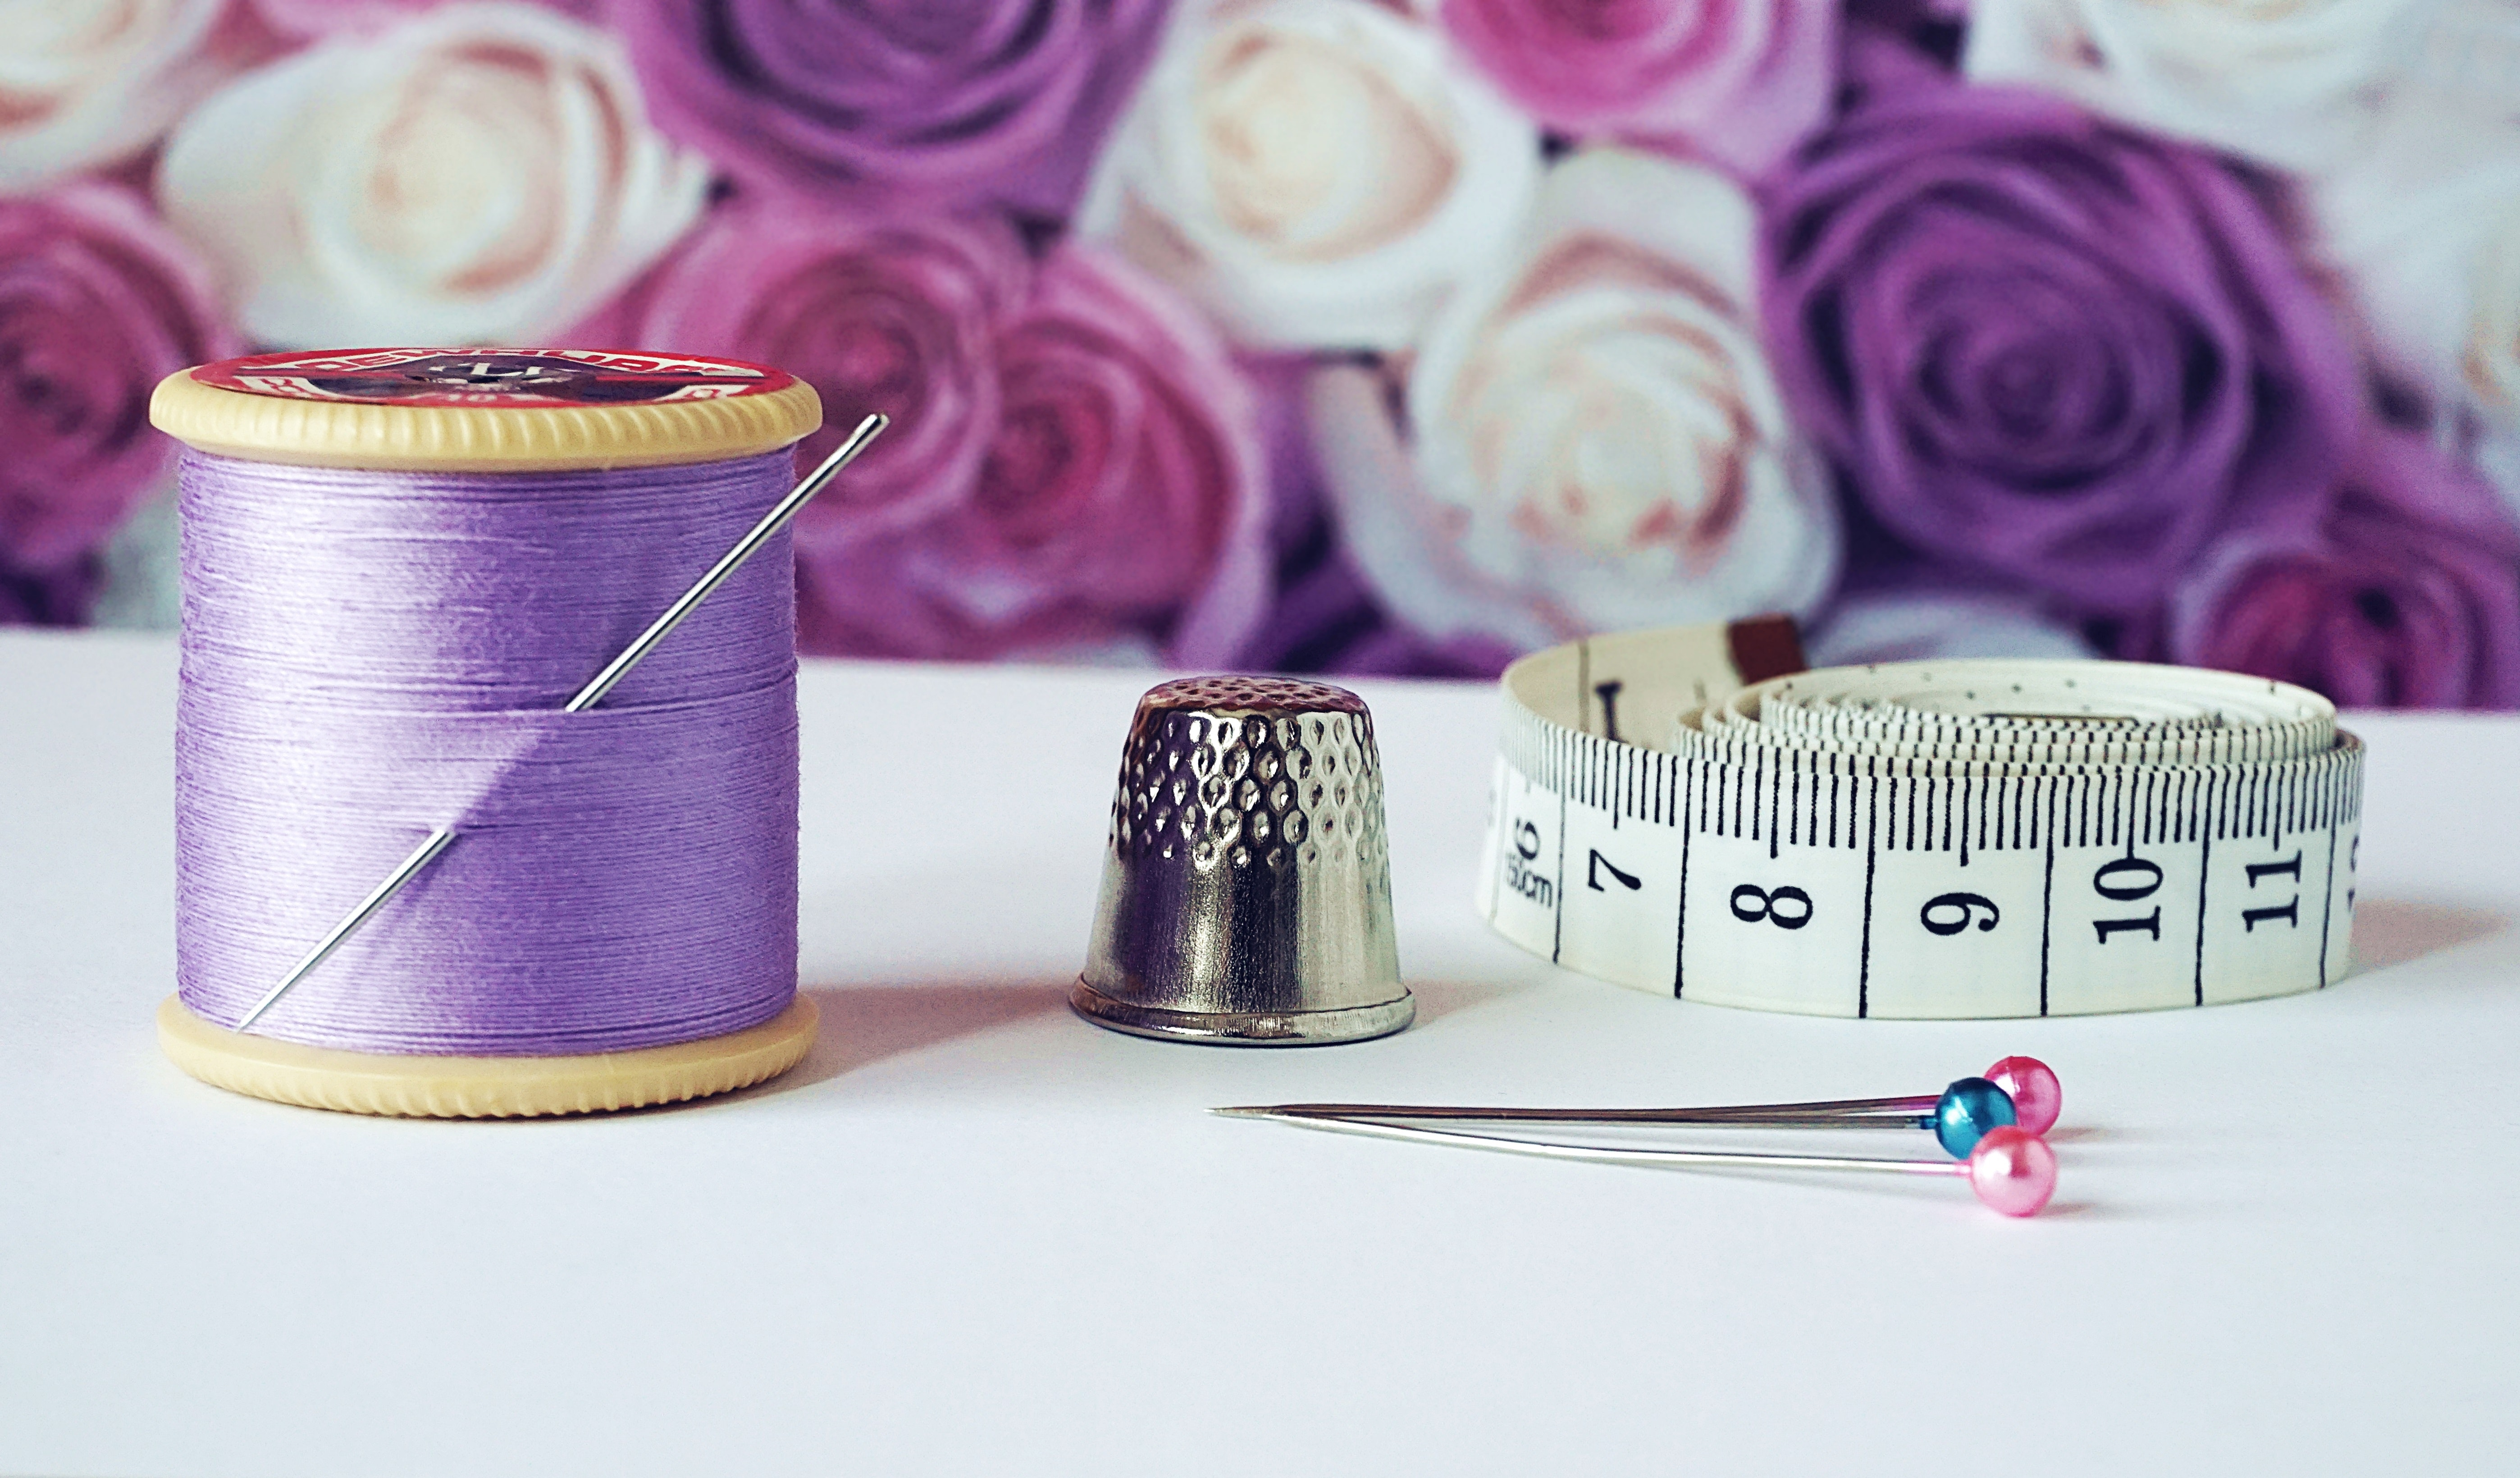 arts-and-crafts-bobbin-close-up-1266139